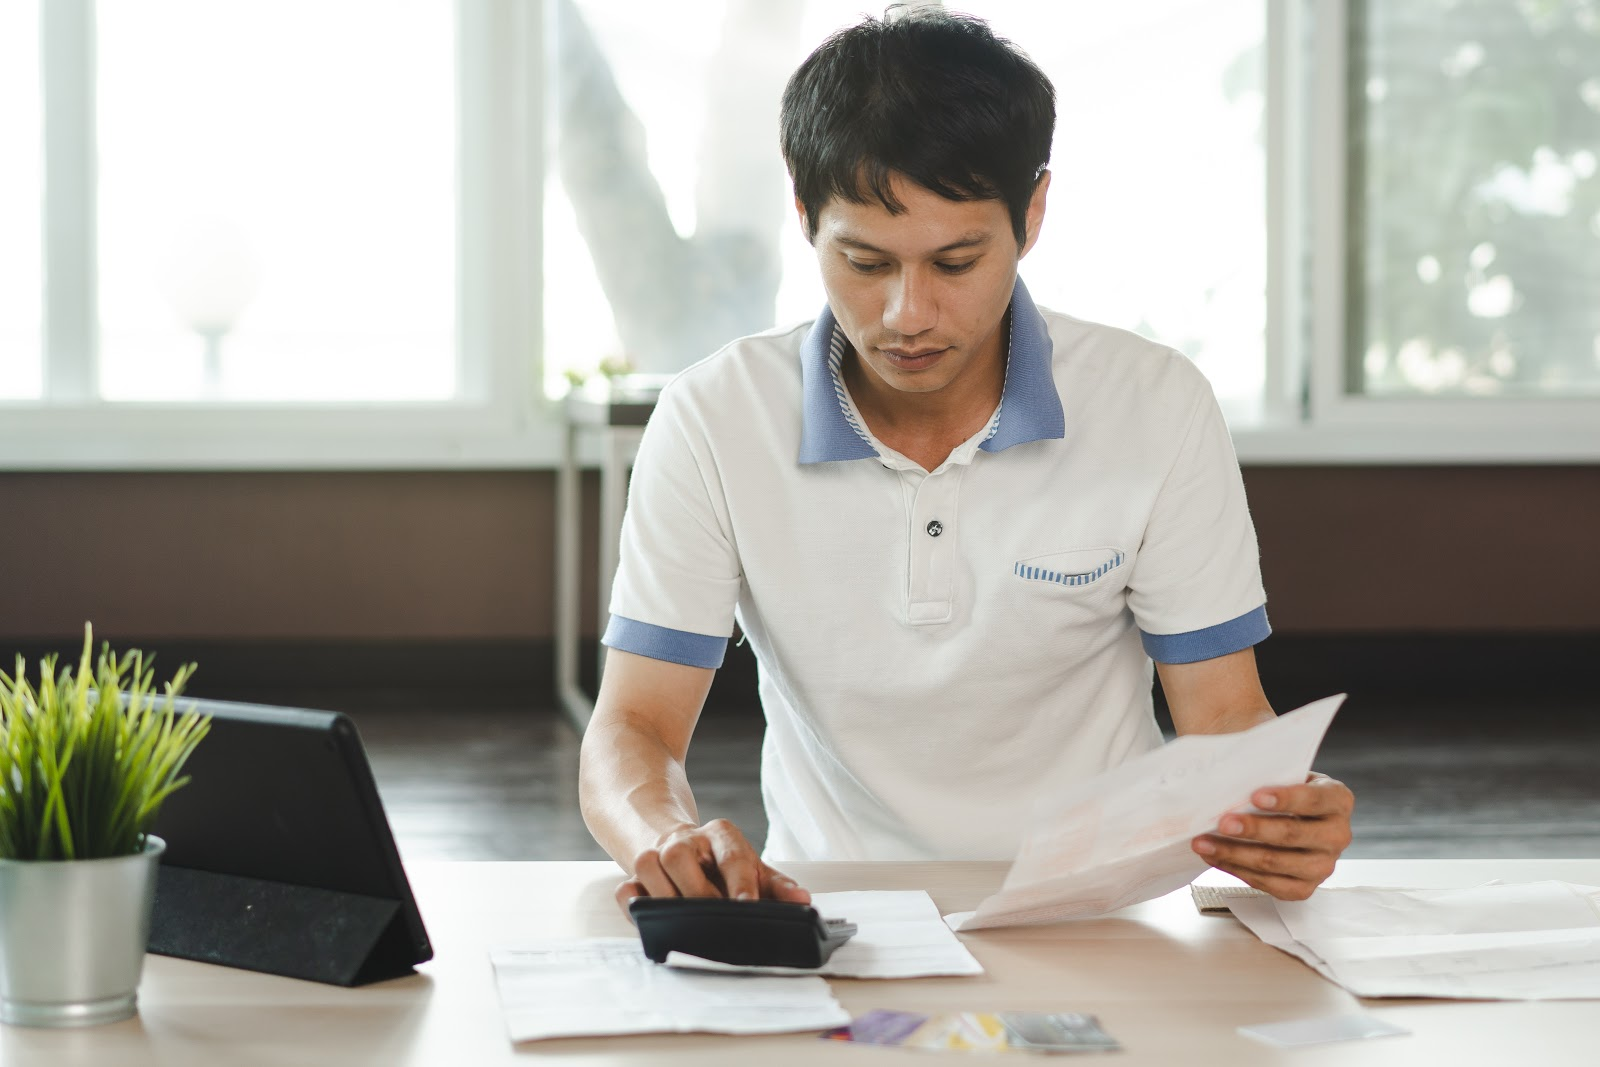 How to consolidate credit card debt on your own: A man calculates his bills